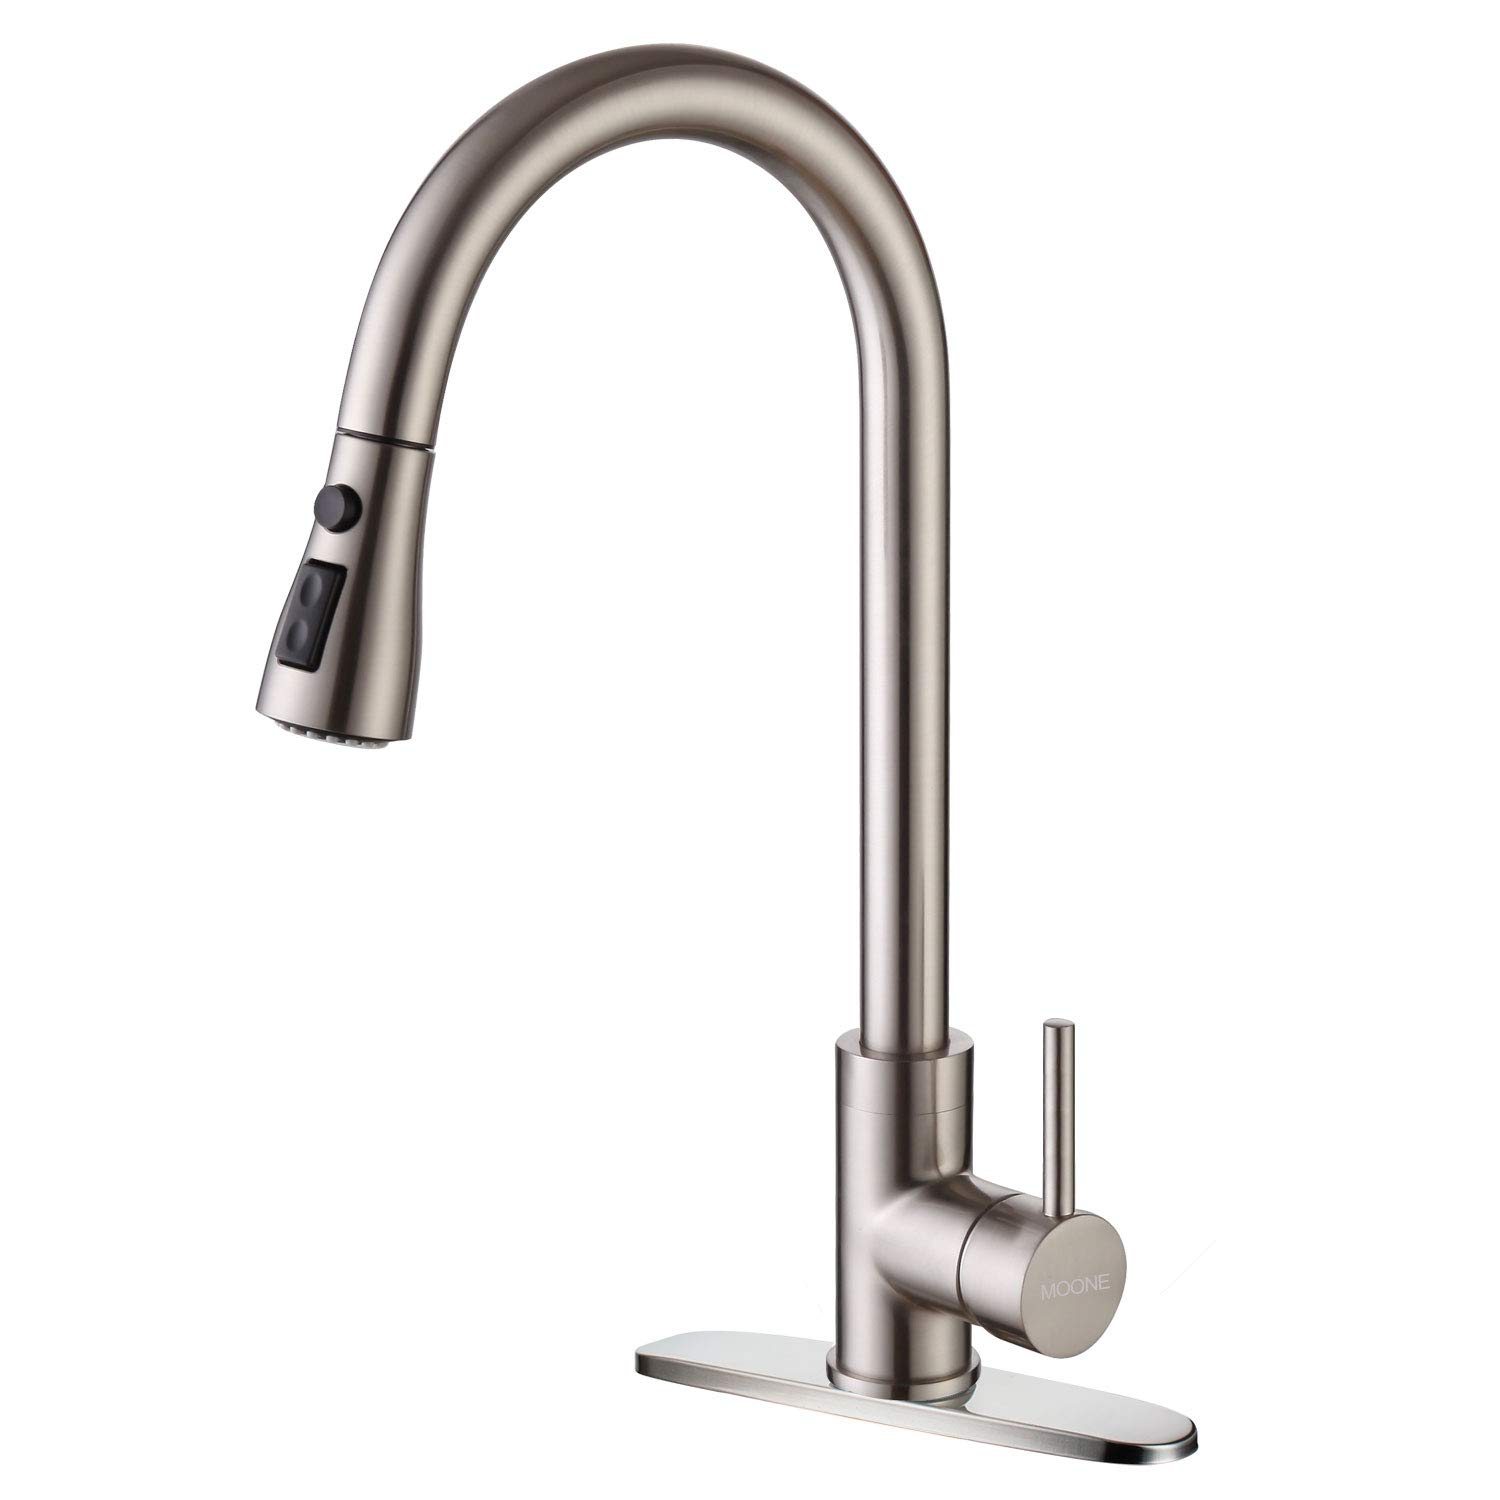 Moone Commercial Single Handle Kitchen Faucet Pull Down Sprayer Brass Body Pull Out Spray Kitchen Sink Faucets Stainless Steel Brushed Nickel